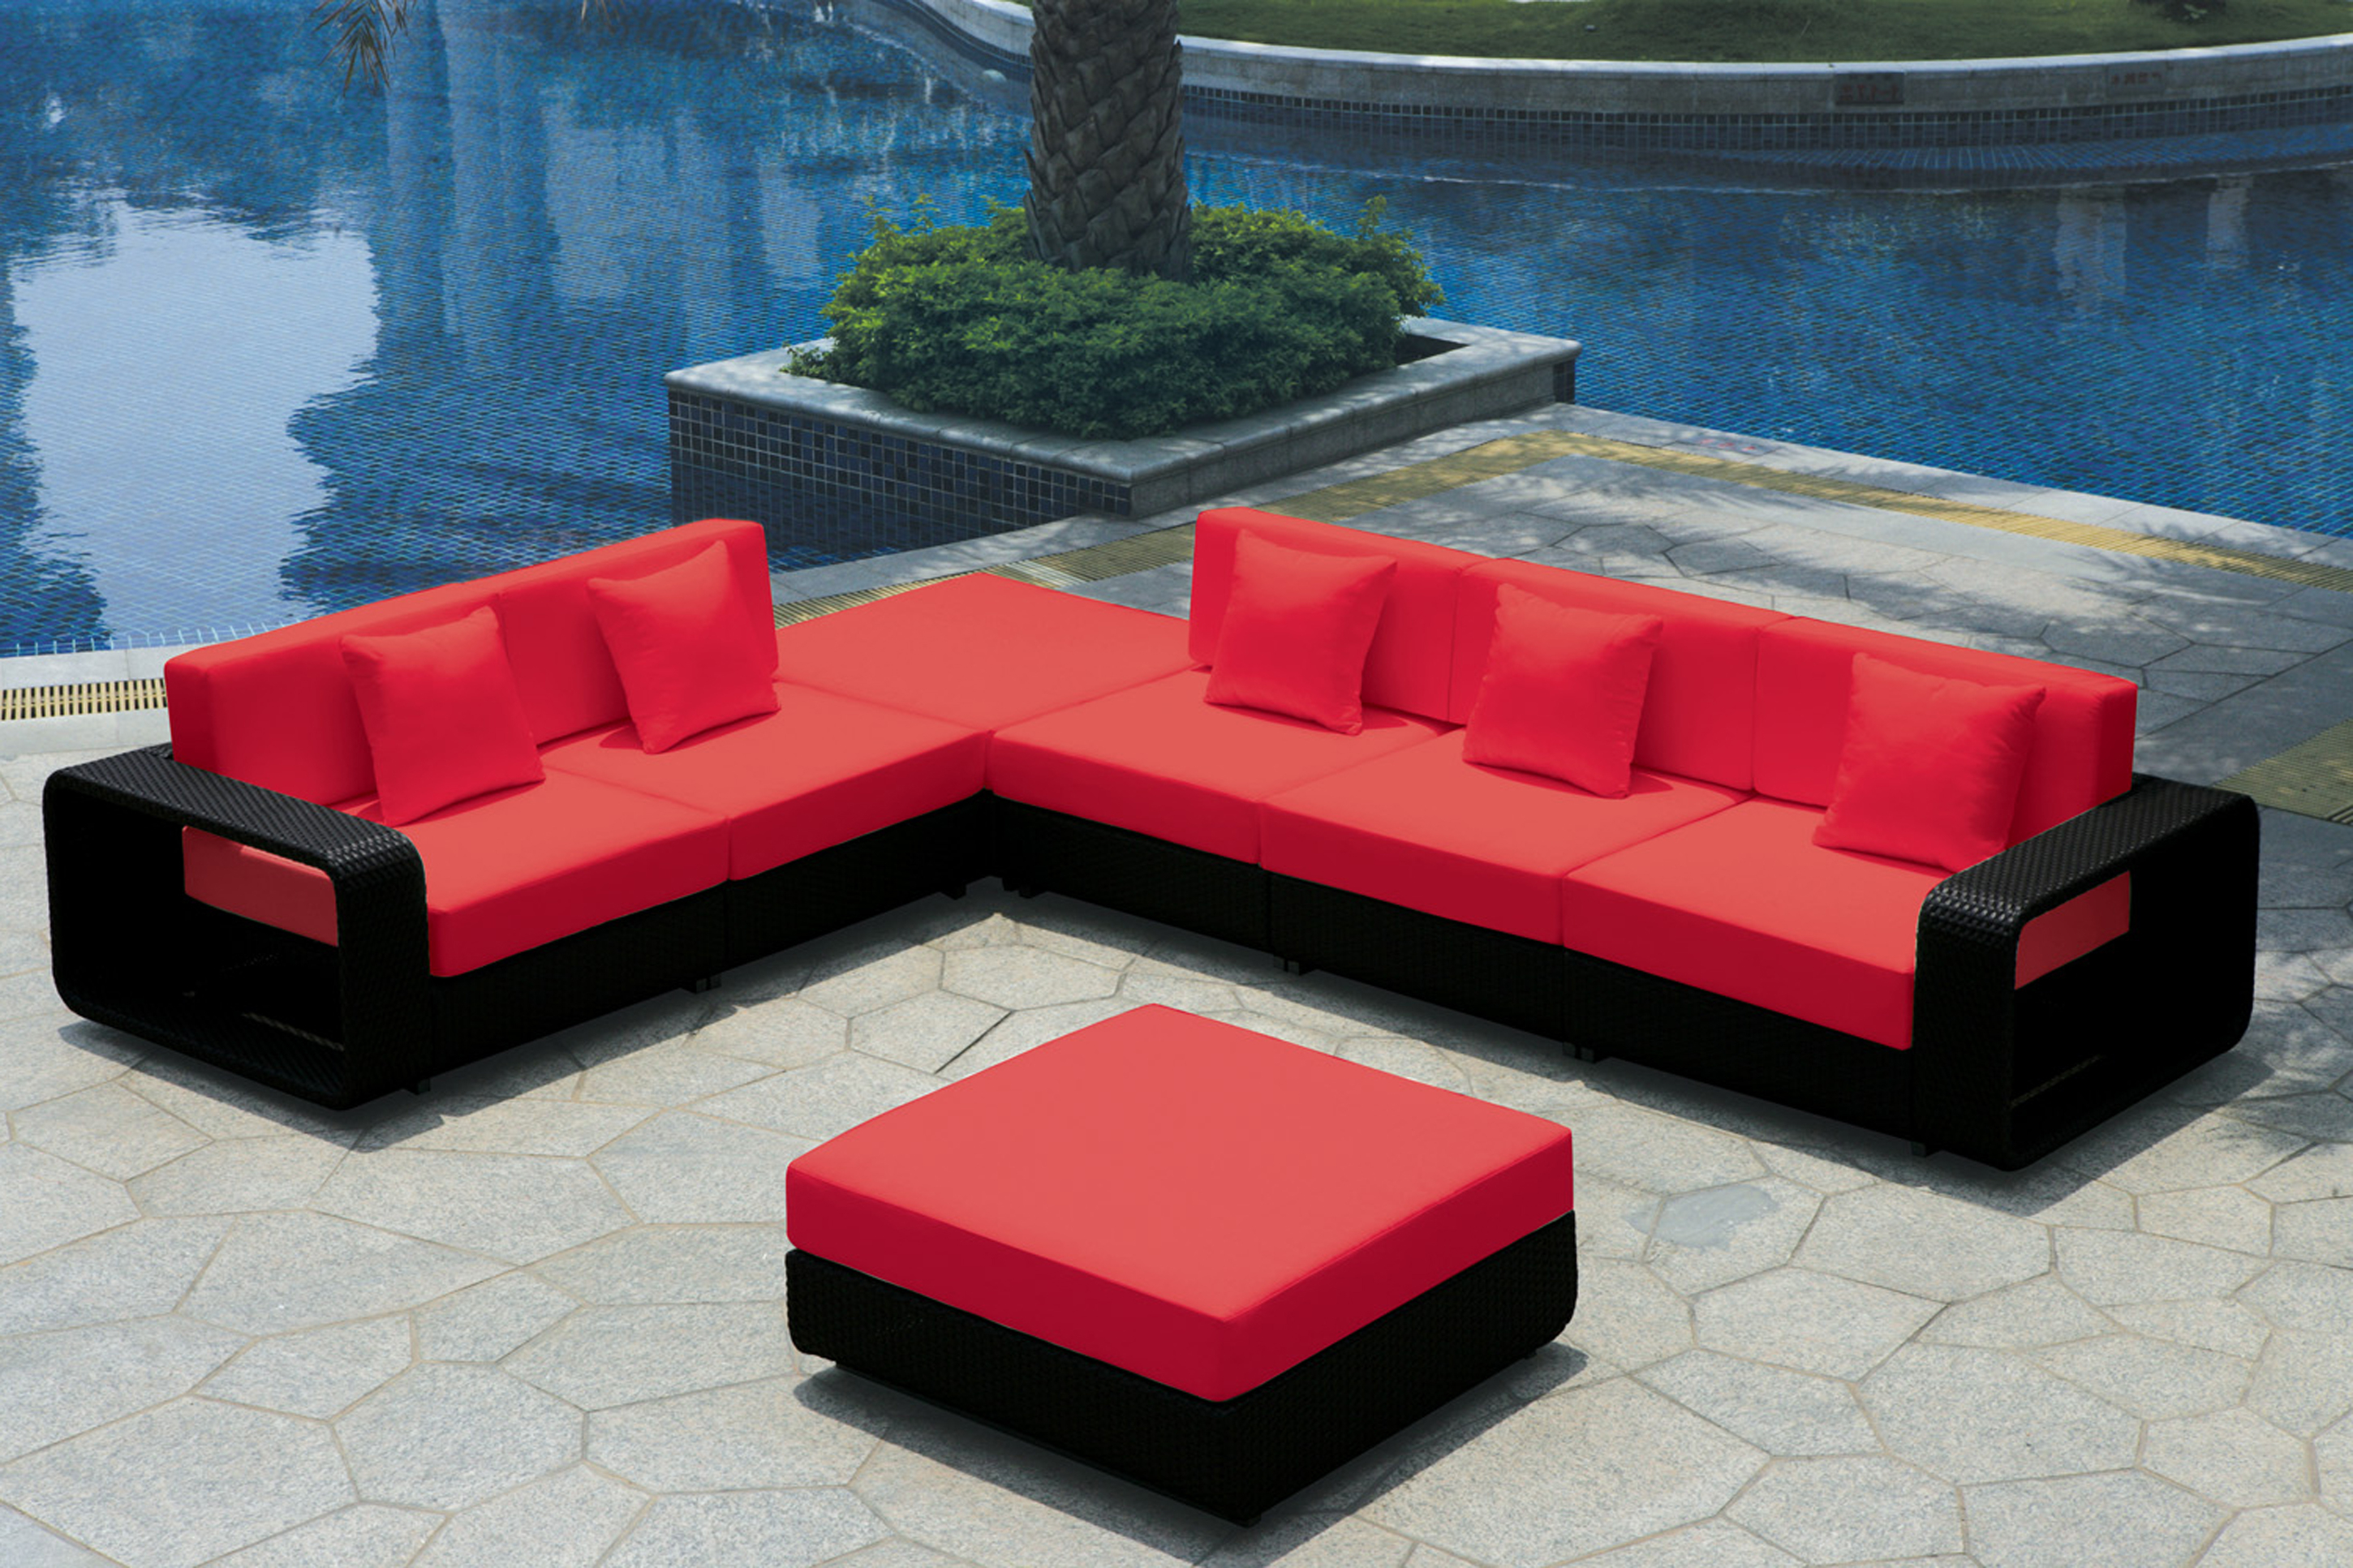 Minimalist Contemporary Outdoor Idea Wit Red Black Sofa With Red Throw Pillows And Red Black Coffee Table Great Contemporary Outdoor Ideas (Image 10 of 25)